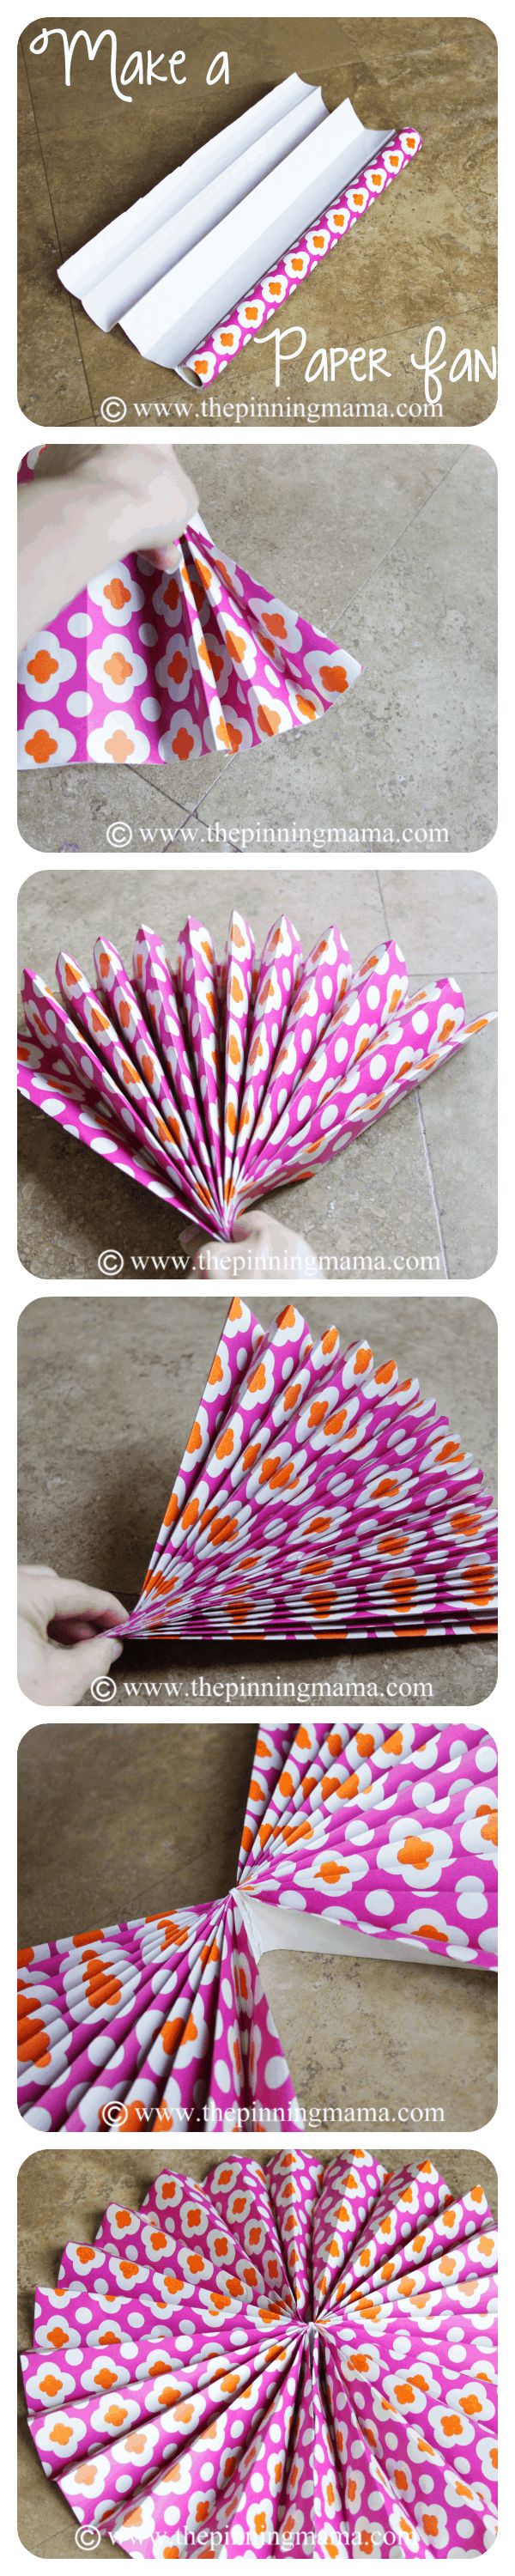 steps to make a paper fan easily